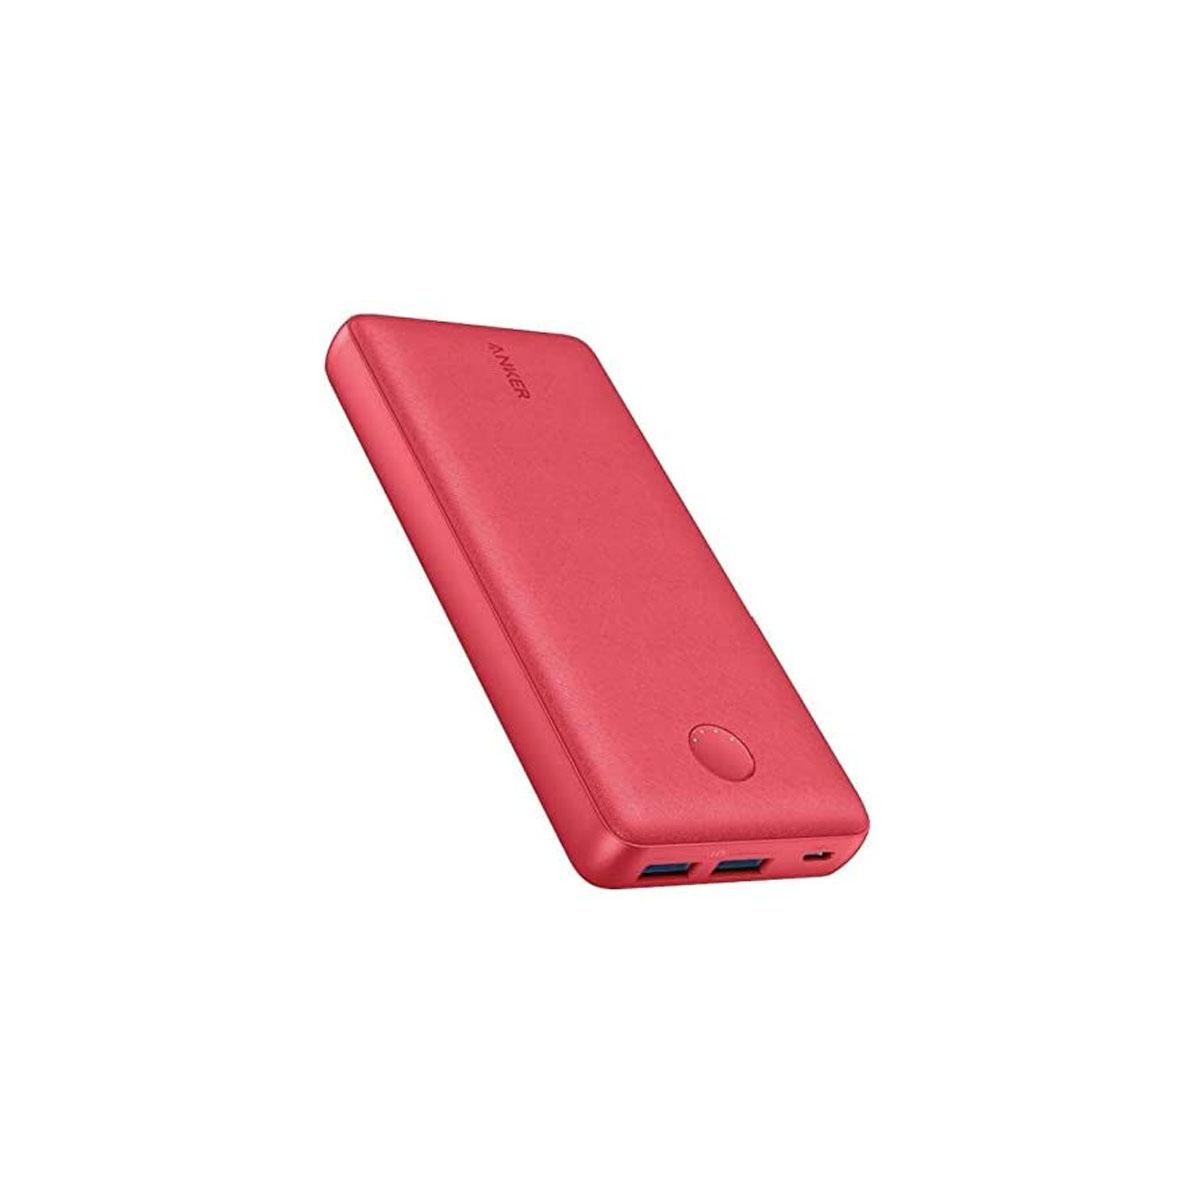 Anker Power Bank 20,000mAh with 2 USB-A PowerCore Select 20K Red